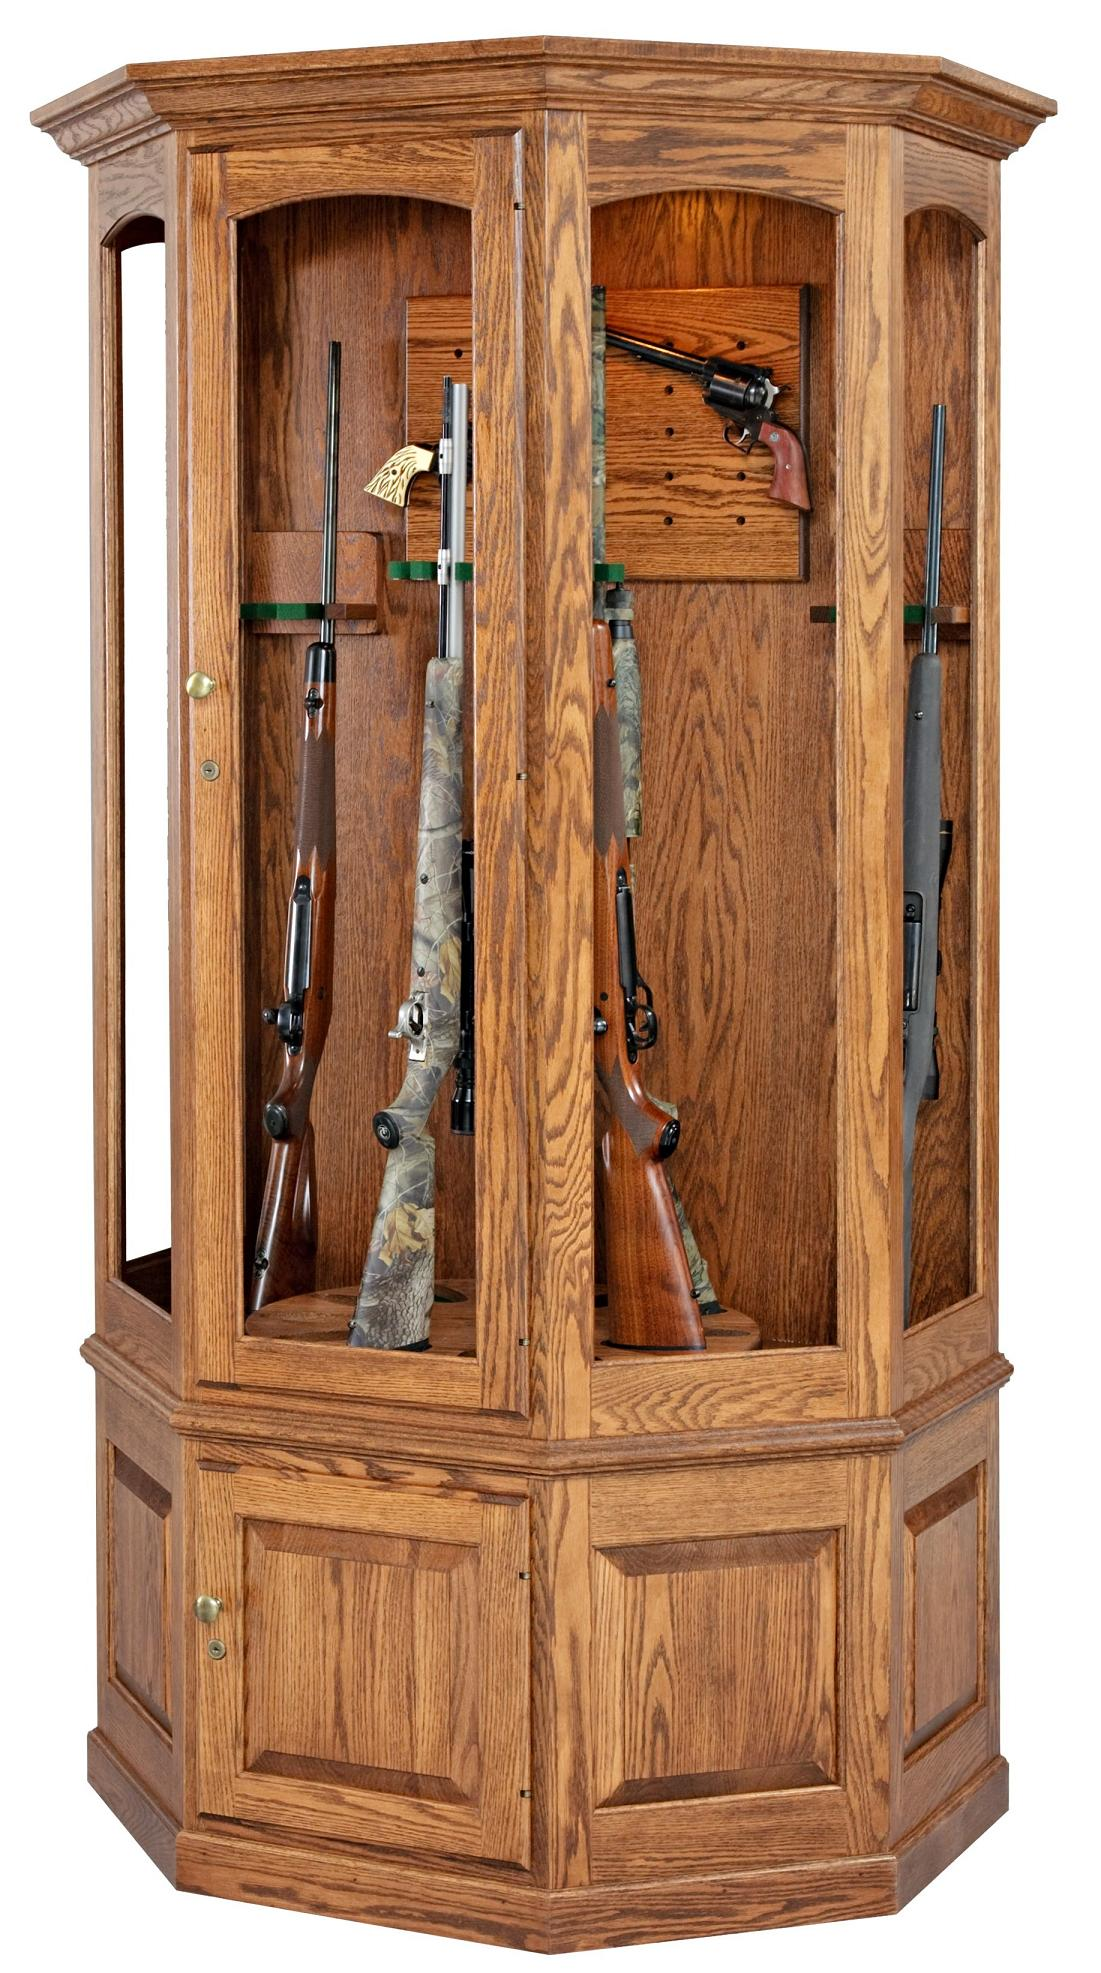 Swaying Her gun cabinets on Buying a New Gun Cabinet